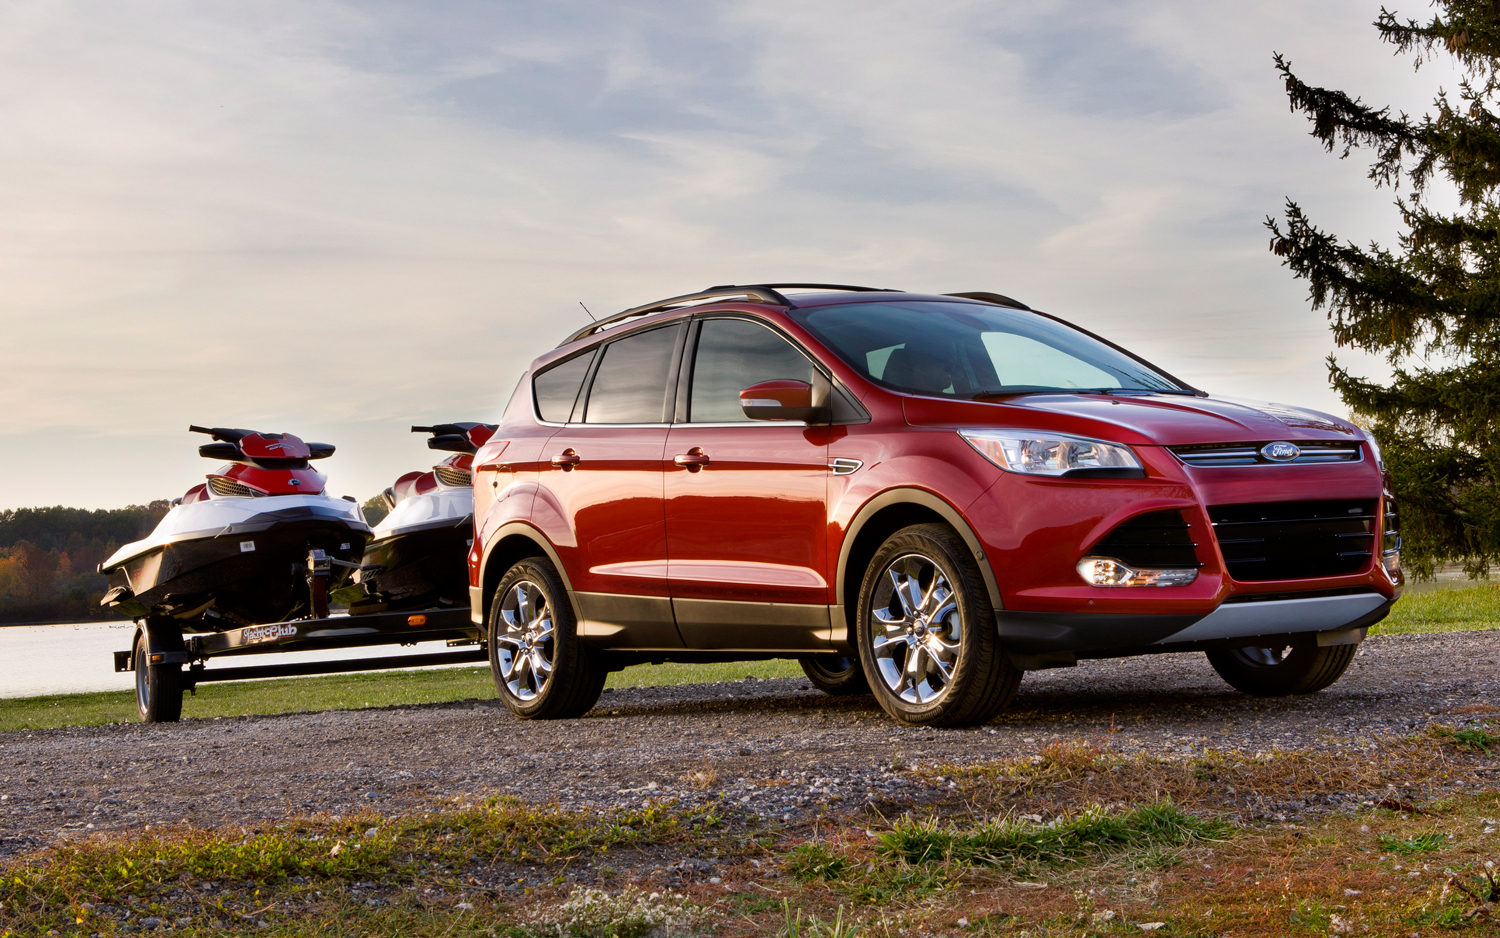 2016 Ford Escape Trailer Hitch Wiring Wiring Diagram For Light 2016 Ford  Escape Trailer Wiring Adapter 2016 Ford Escape Trailer Wiring